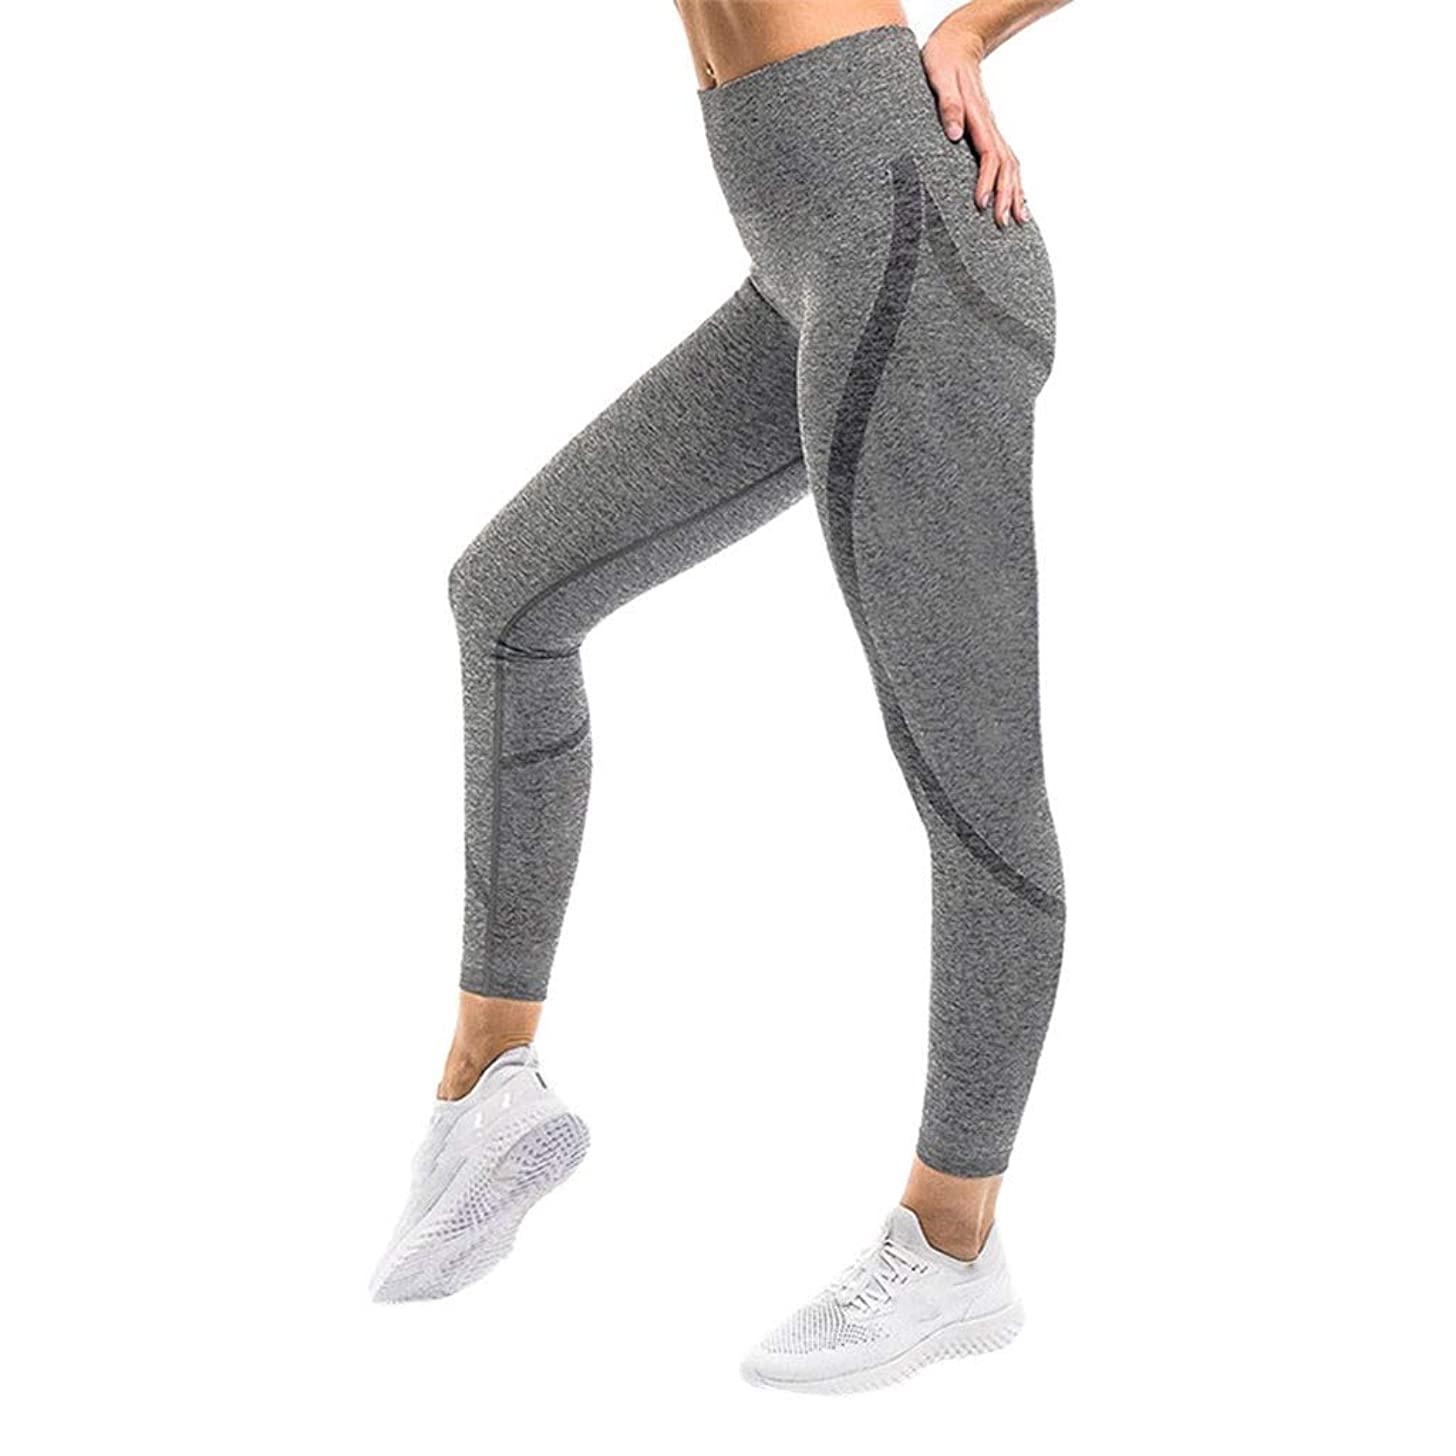 Yoga Pants for Women Gibobby Womens High Waist Workout Pants Sports Youth Gym Running Fitness Athletic Leggings